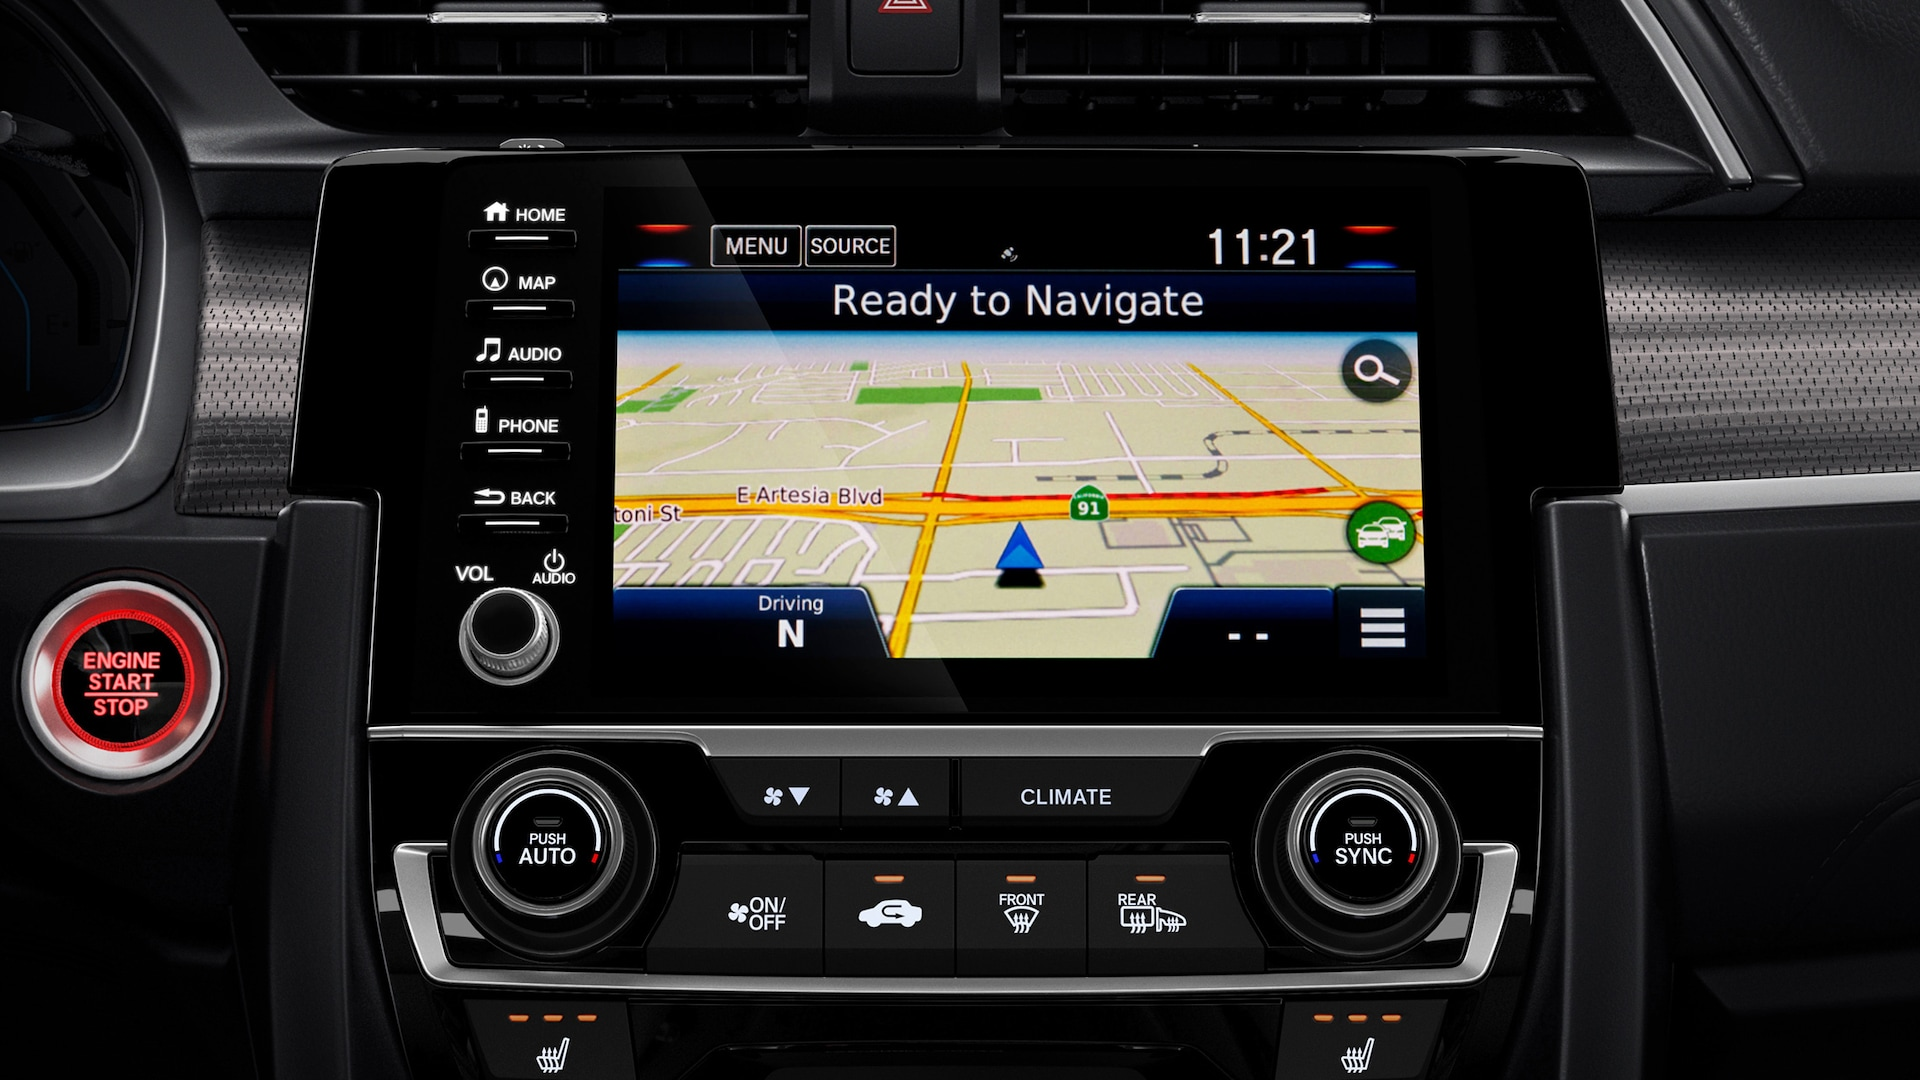 Detalle de Honda Satellite-Linked Navigation System™ en el Honda Civic Coupé 2020.